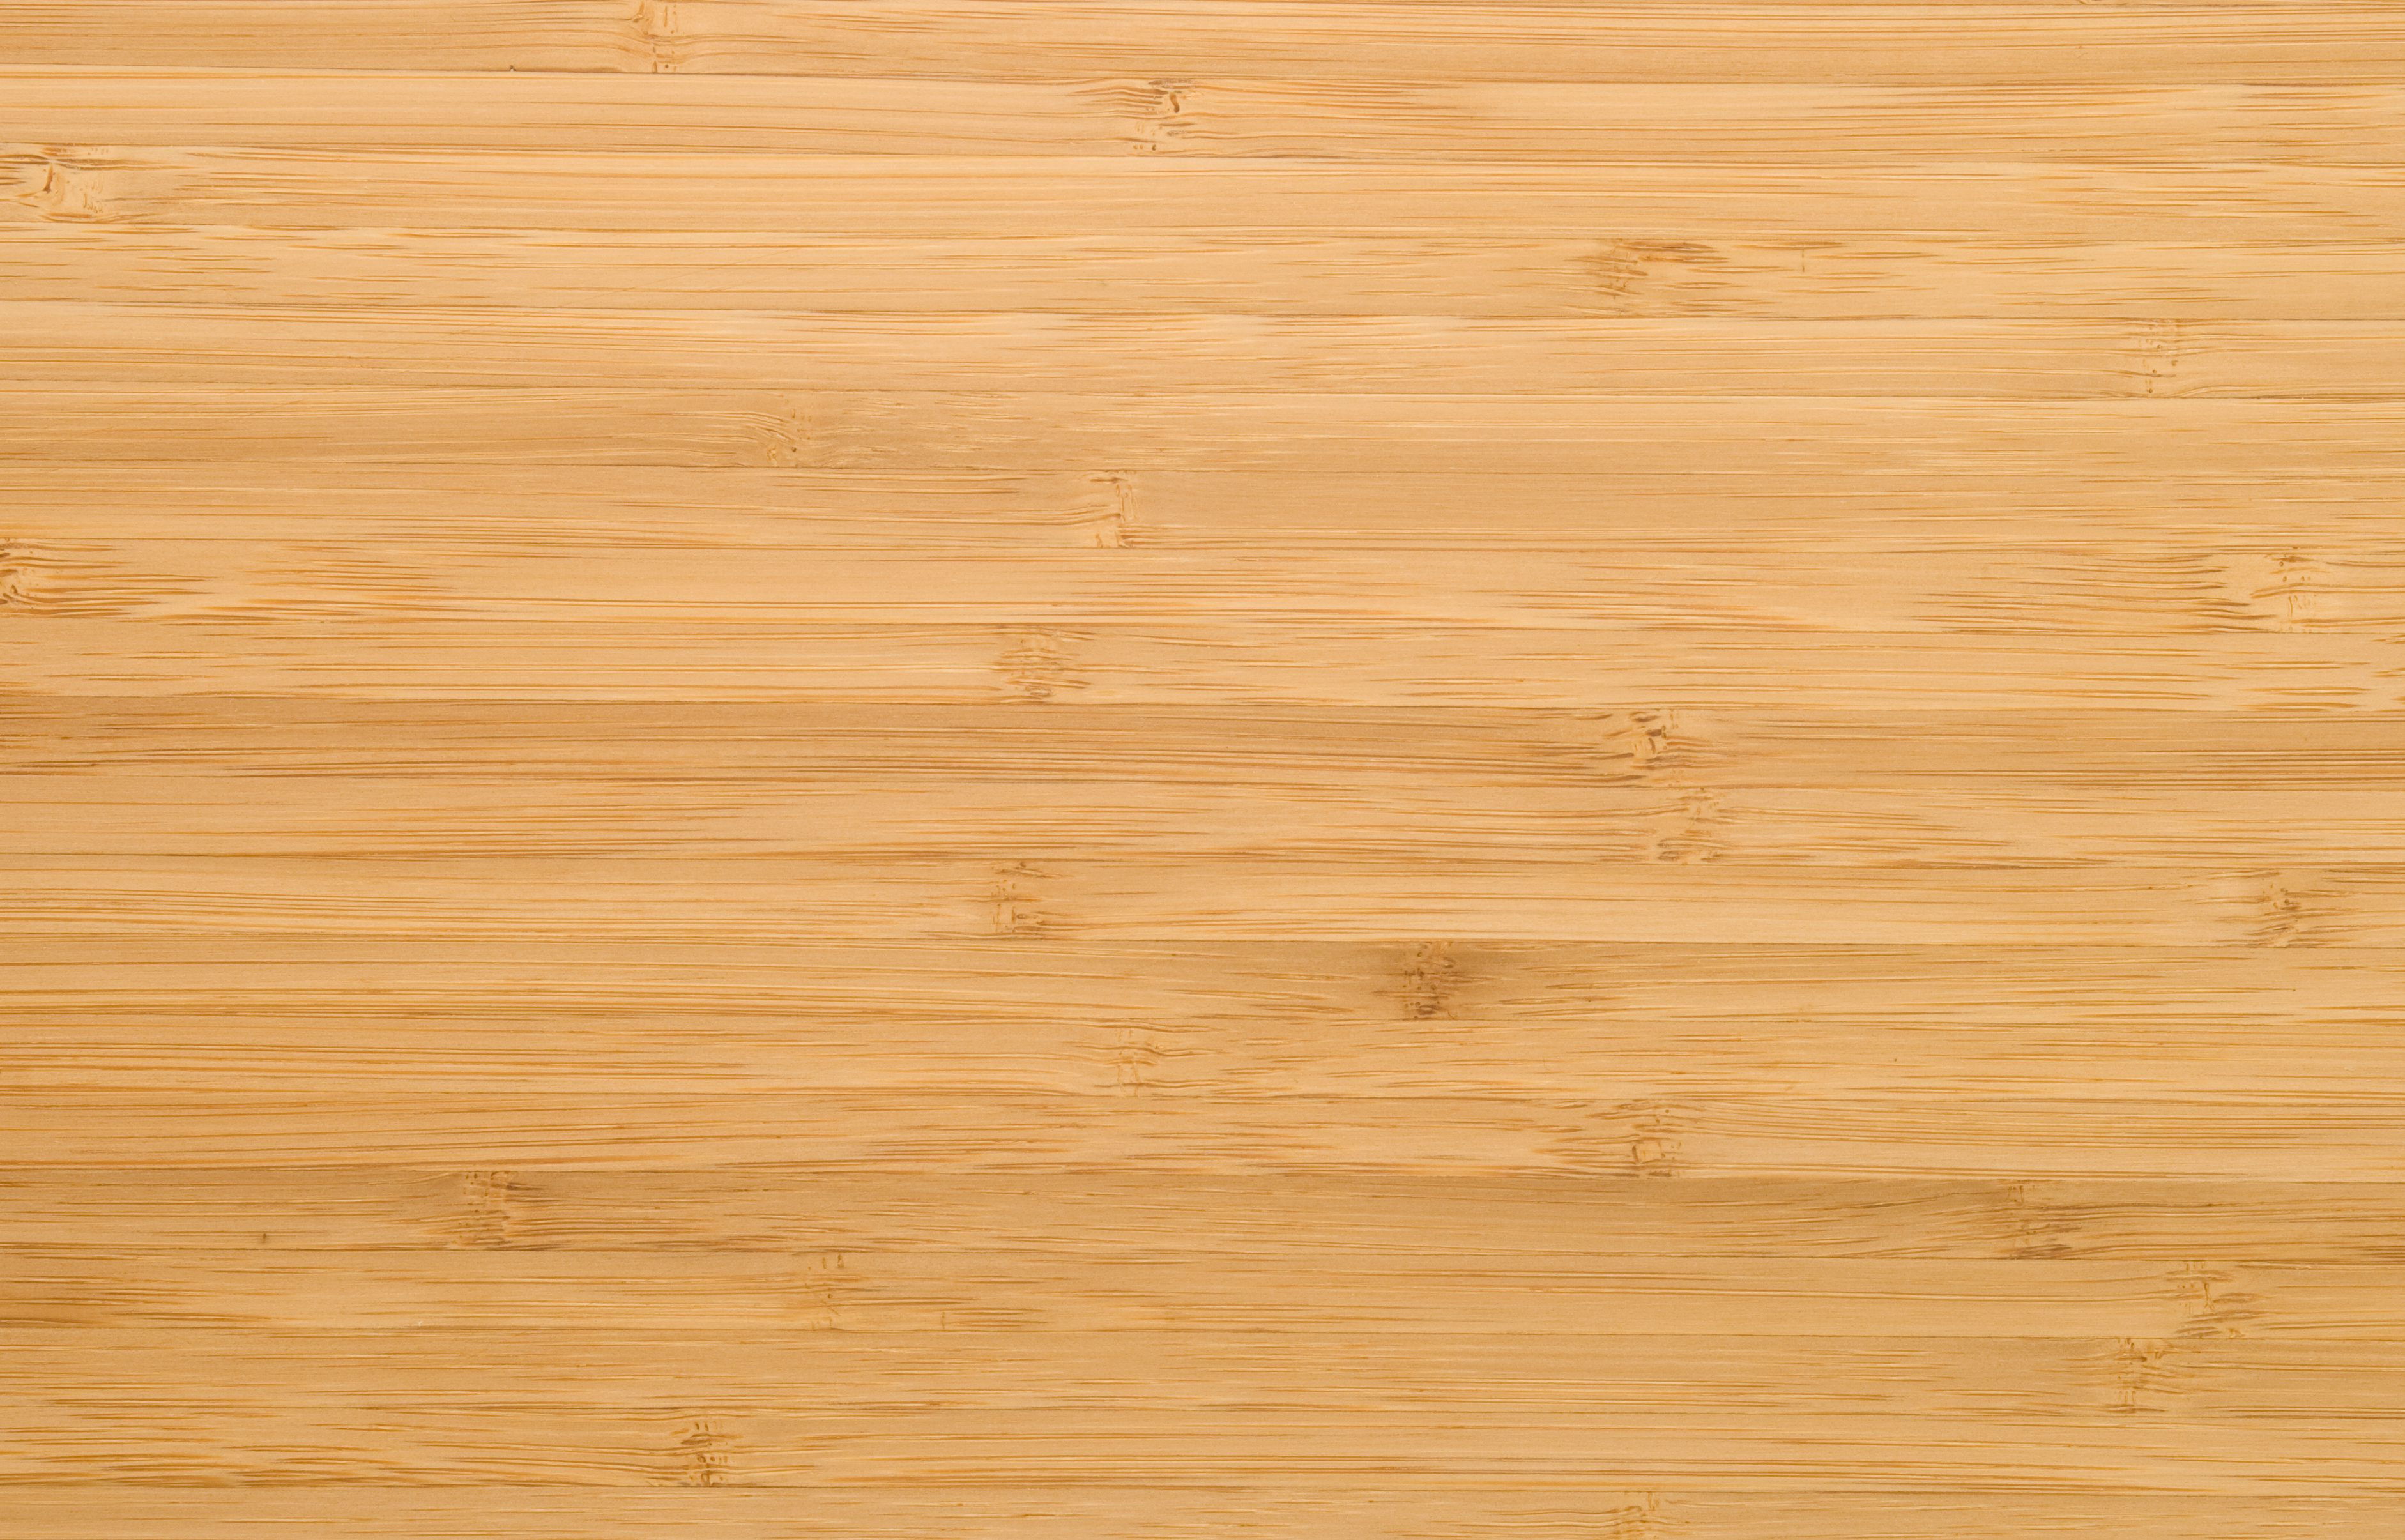 hardwood floor cleaning tools of can you use a wet mop on bamboo floors for natural bamboo plank 94259870 59aeefd4519de20010d5c648